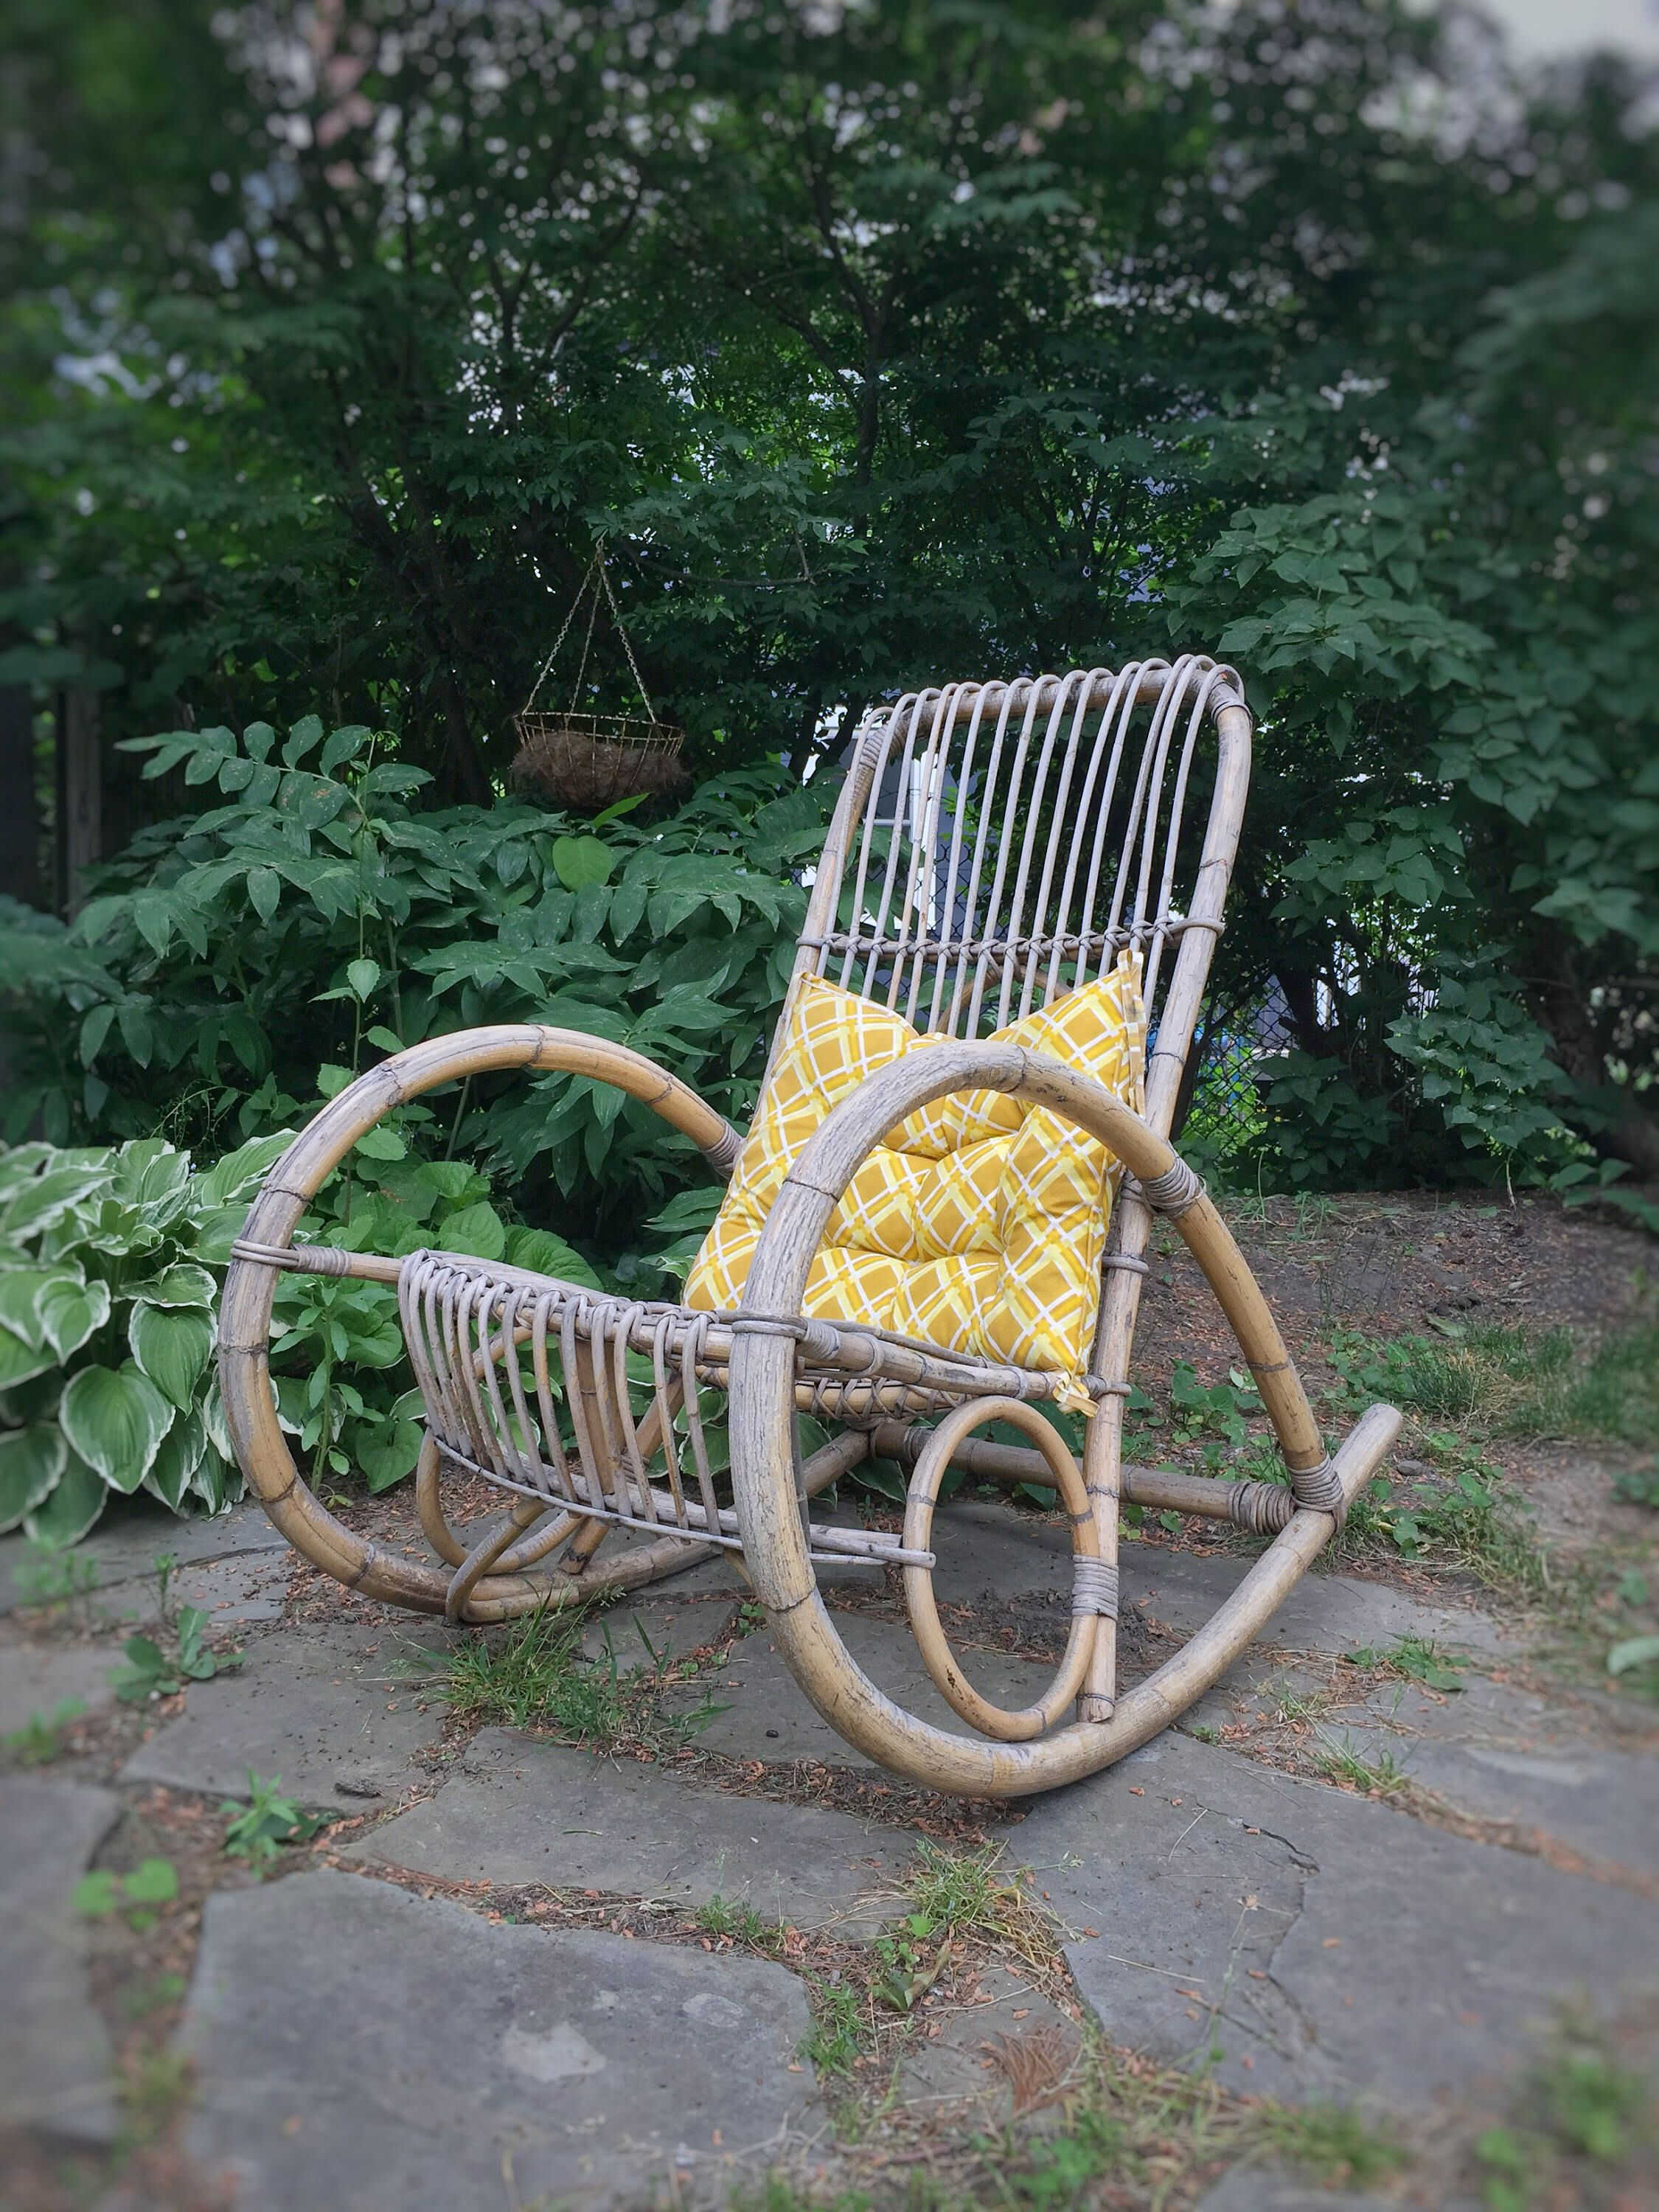 Pin by wolfeDEN on bohemian home decor Rocking chair